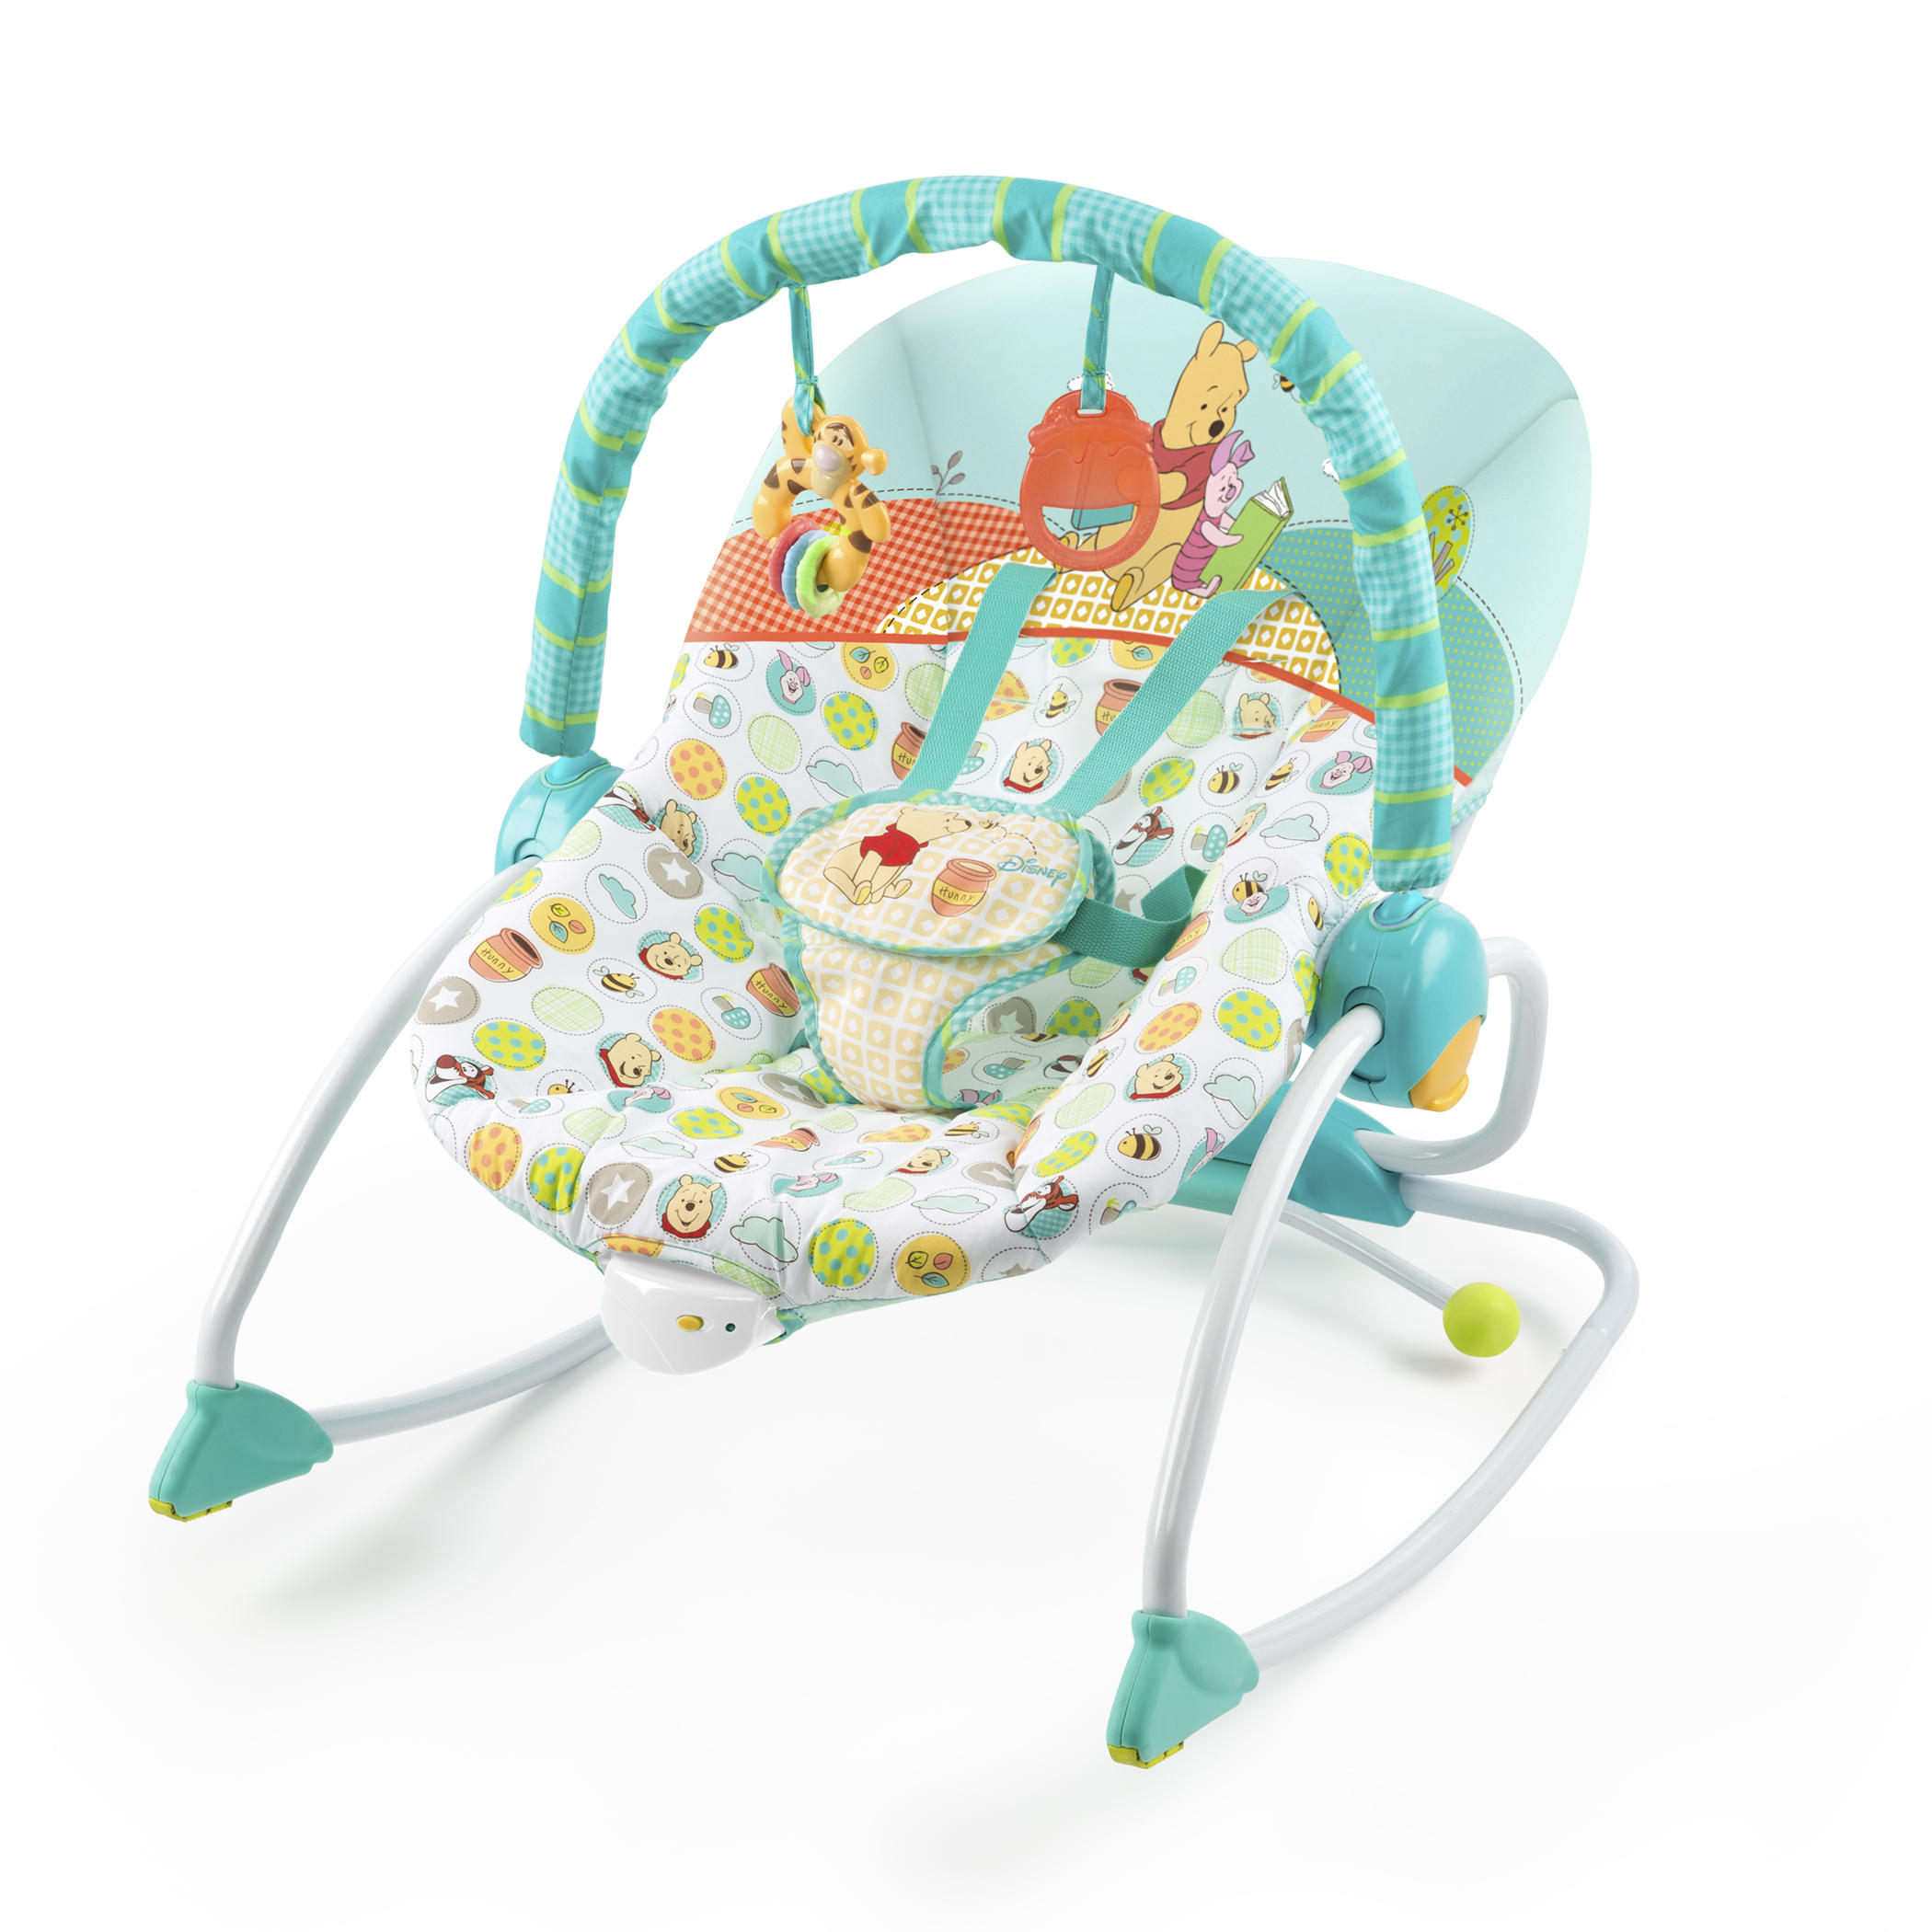 WINNIE THE POOH Baby to Big Kid Rocking Seat